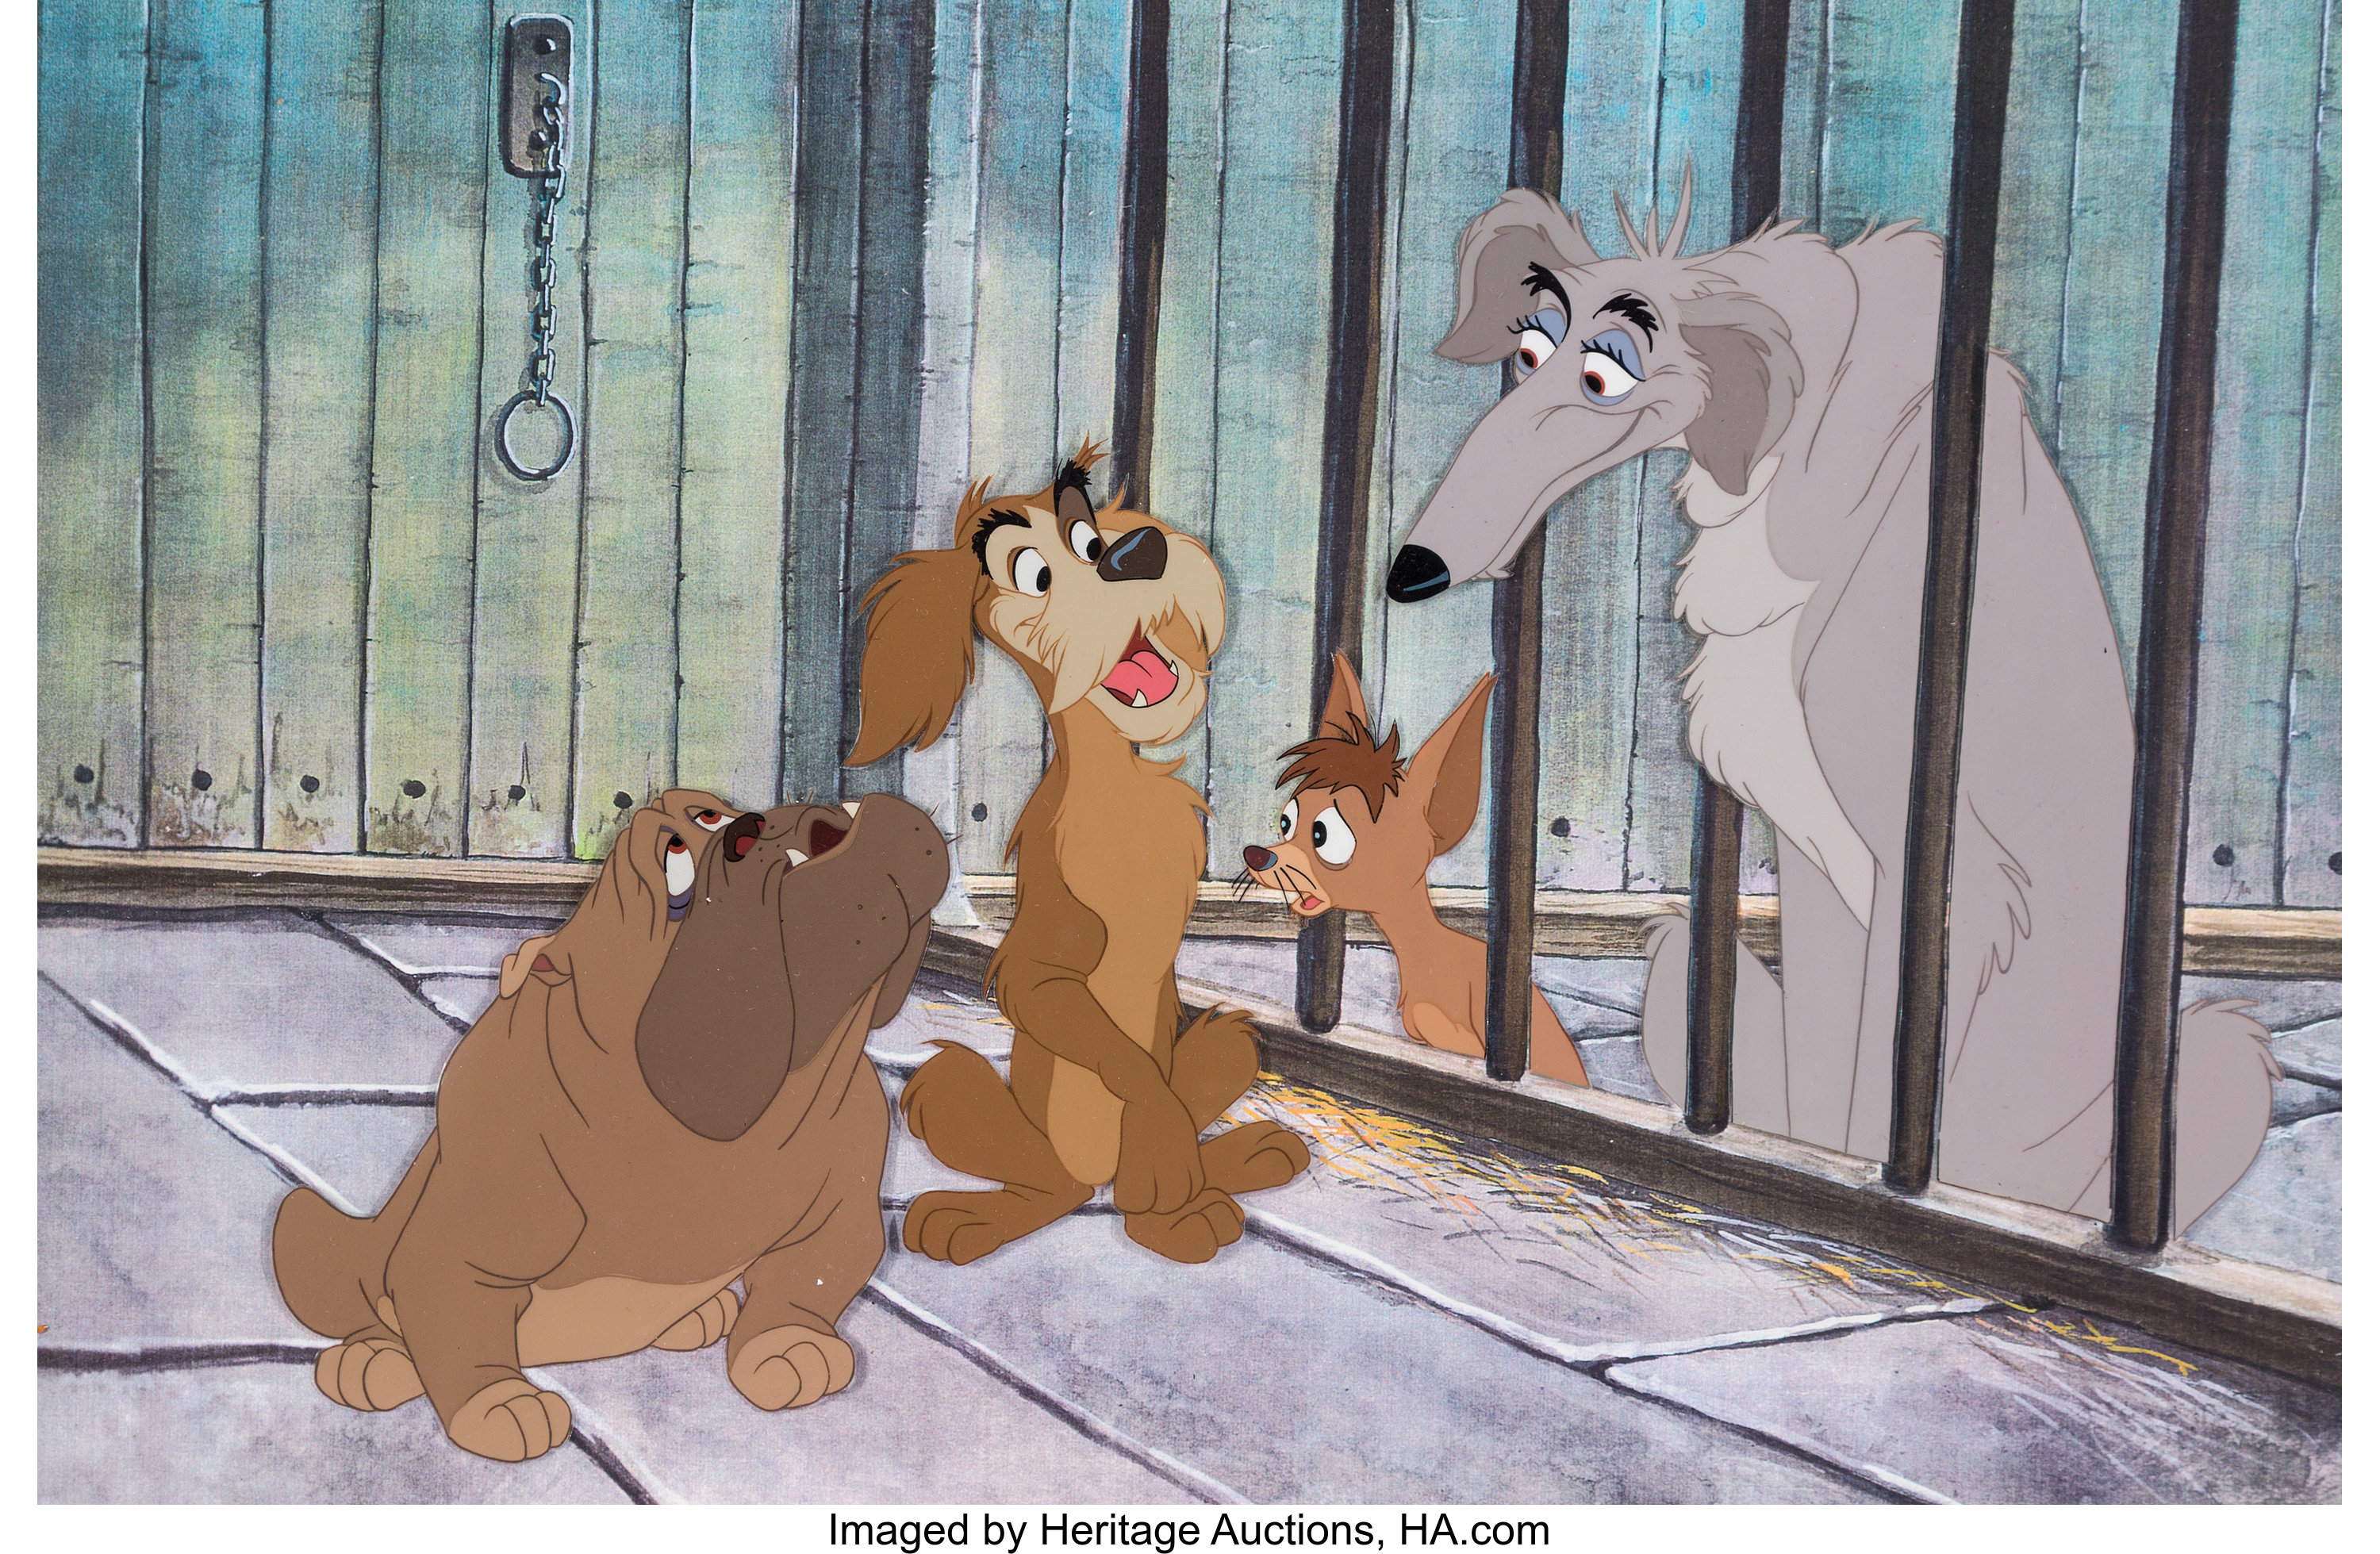 Lady And The Tramp Pound Dogs Production Cel Walt Disney Lot 62230 Heritage Auctions